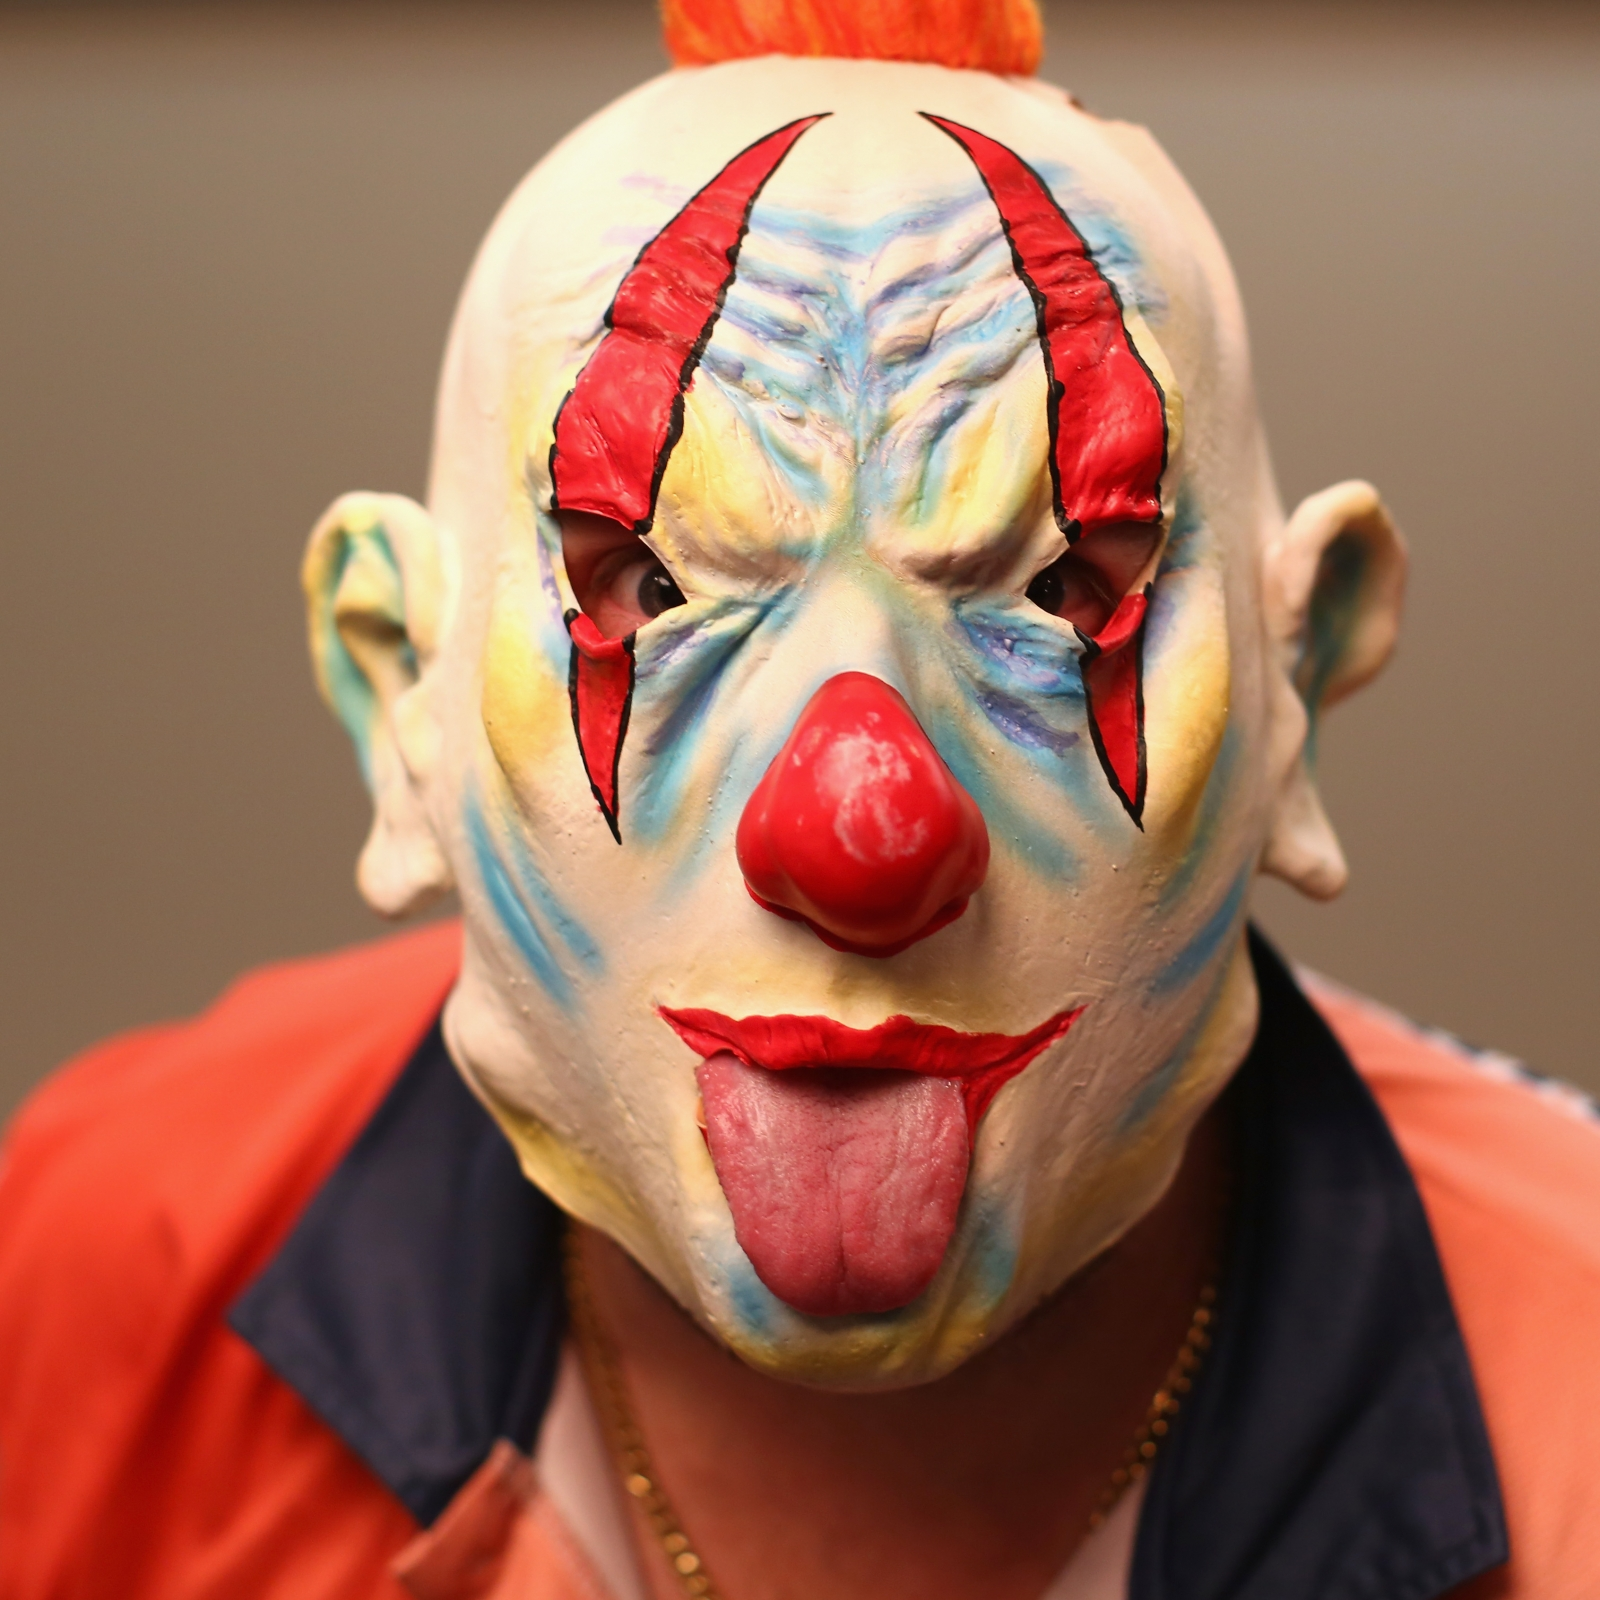 Evil clown mask. (Getty)